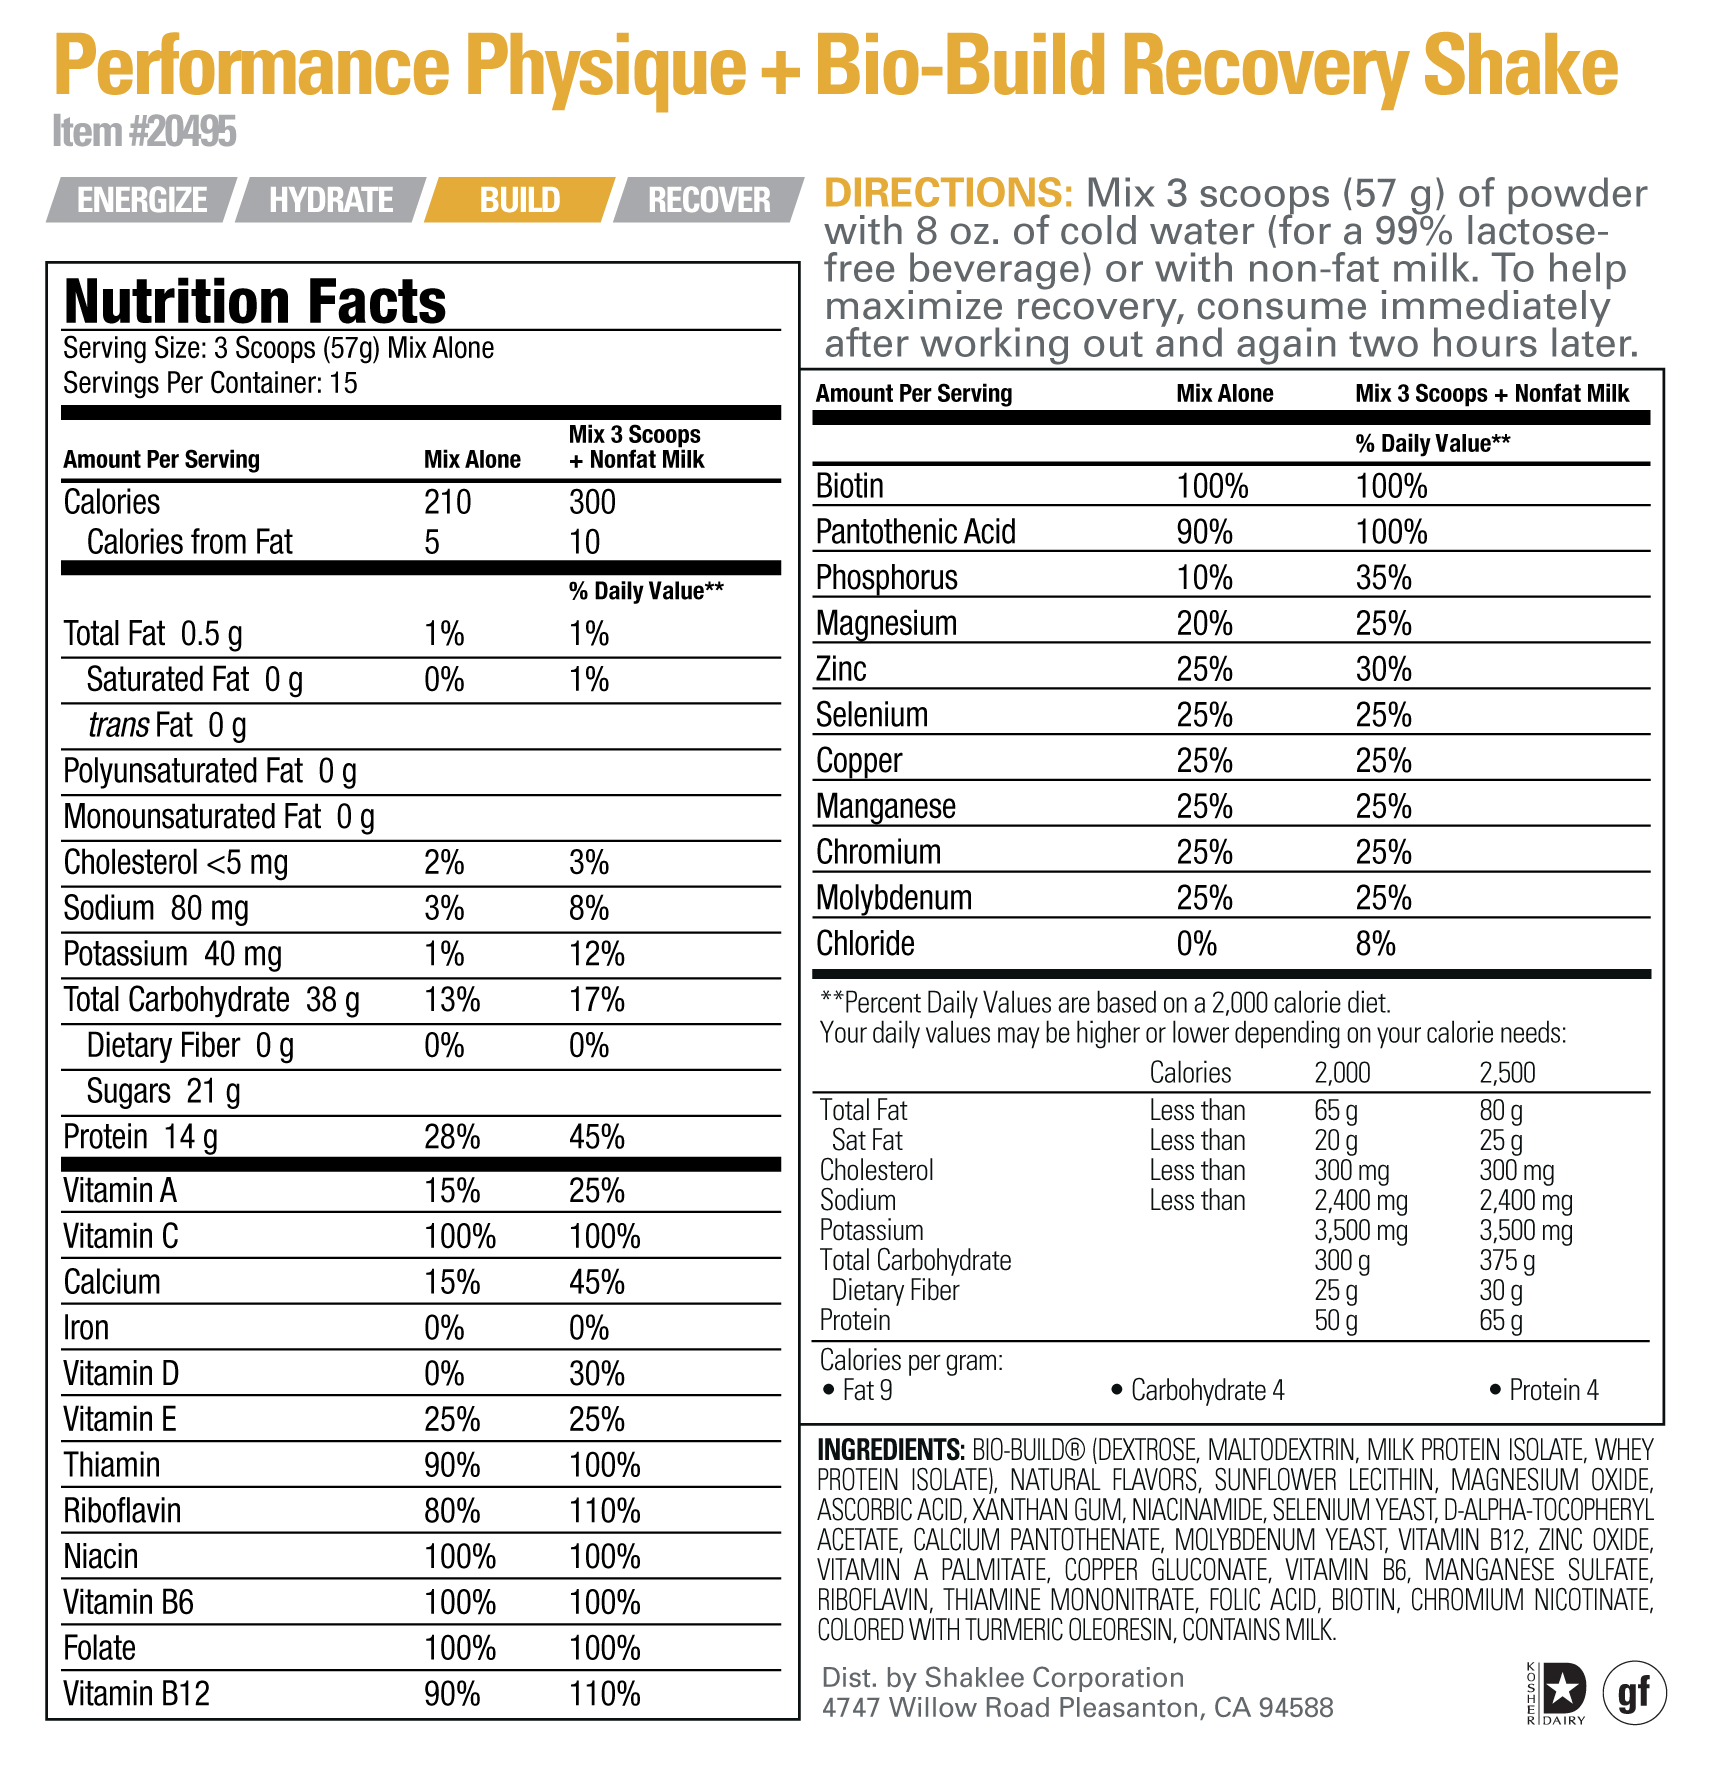 Performance Physique+Bio-Build Recovery Shake